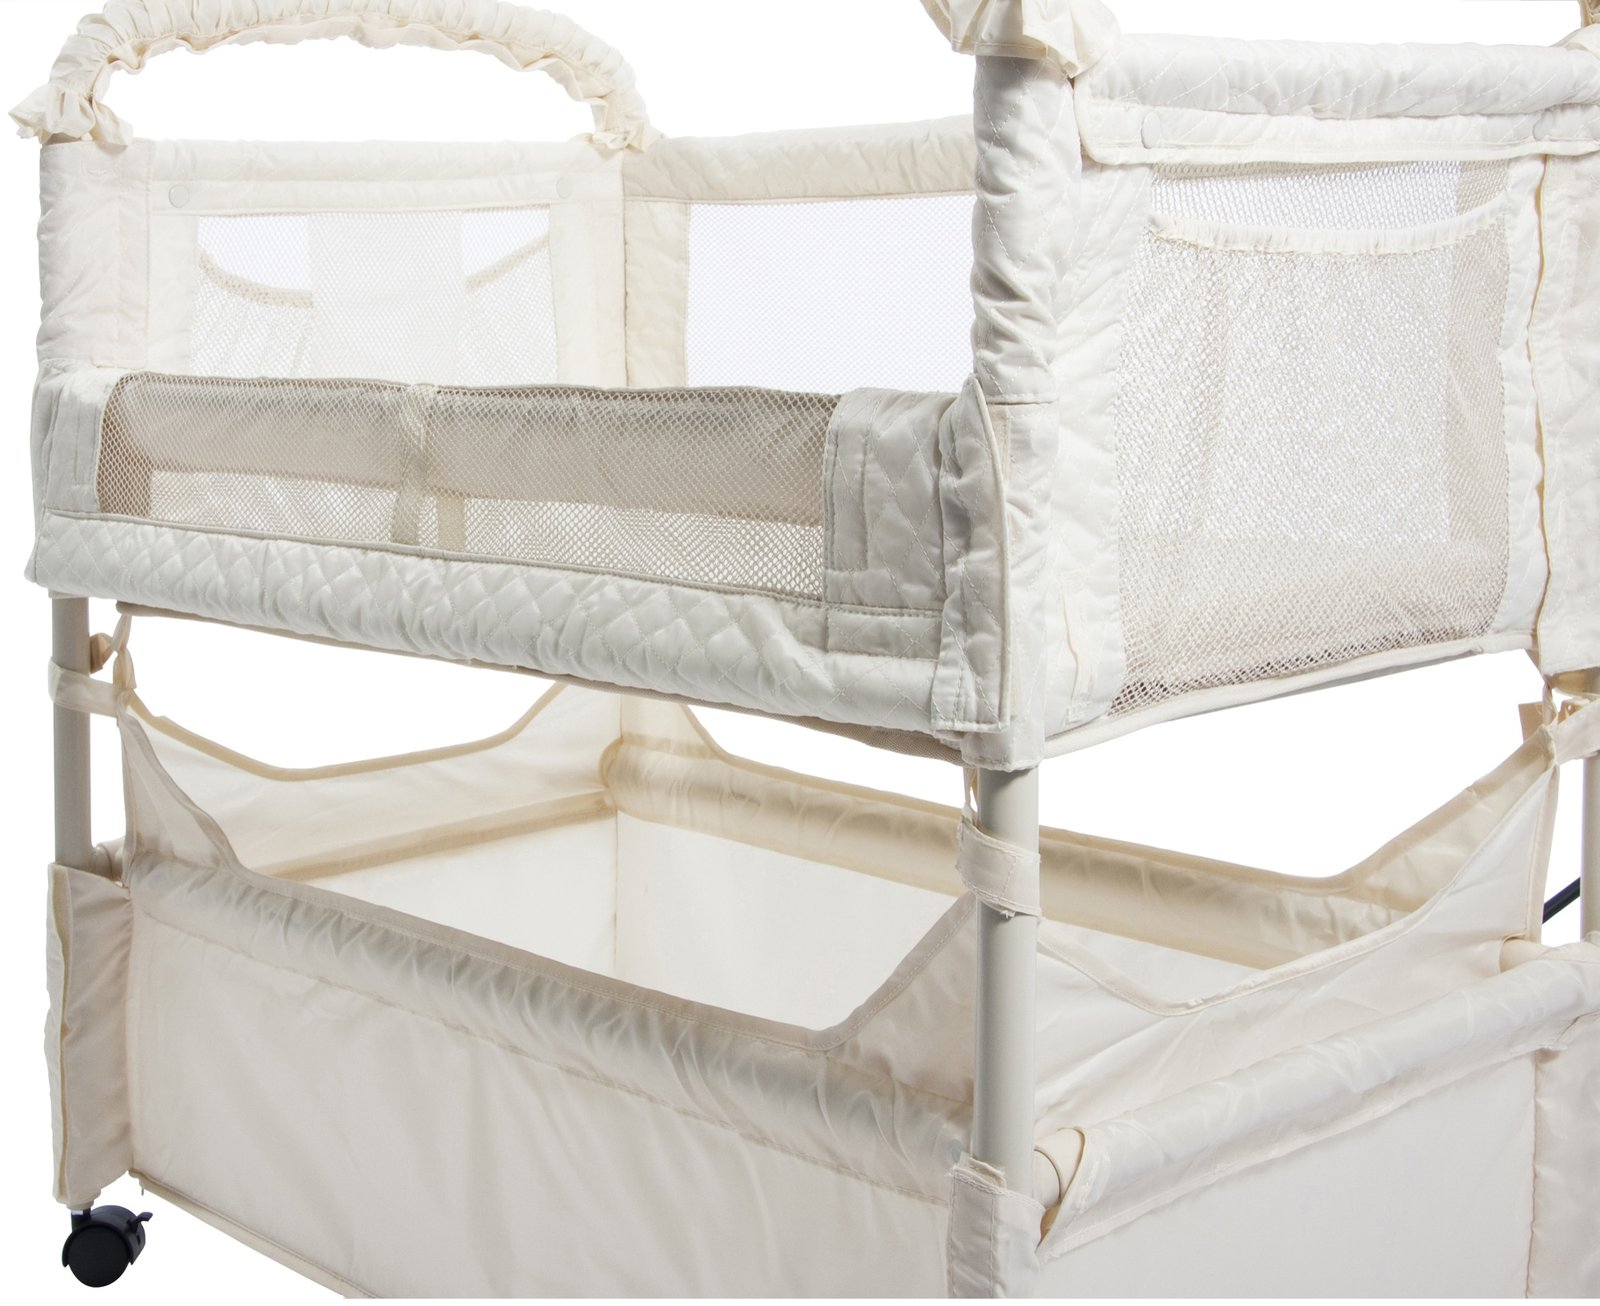 Baby Co Sleeper The Best Infant Cosleeper Review Cambria